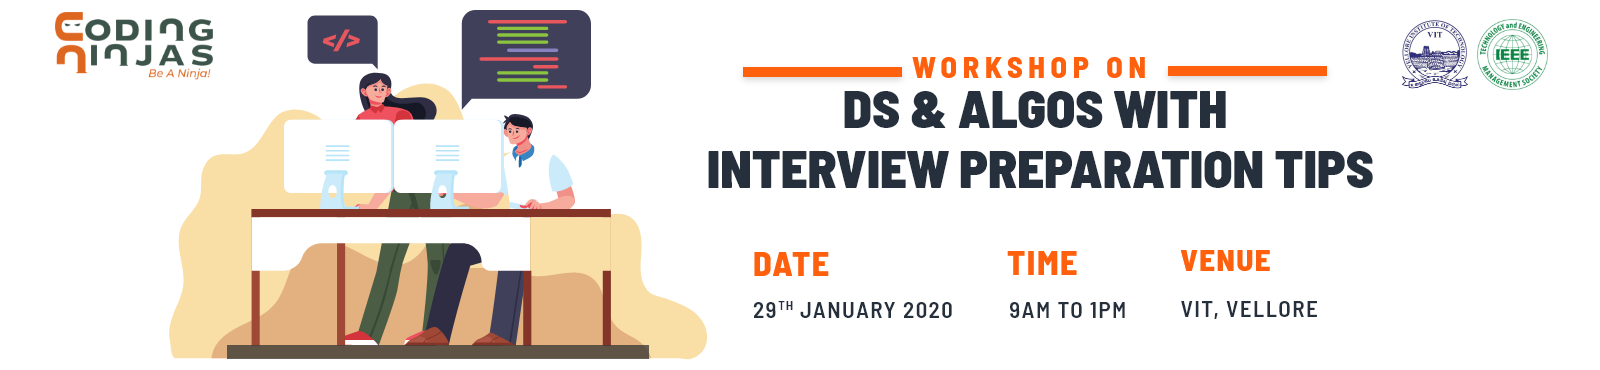 Workshop on Data Structures and Algorithms with Interview Preparation Tips at VIT Vellore